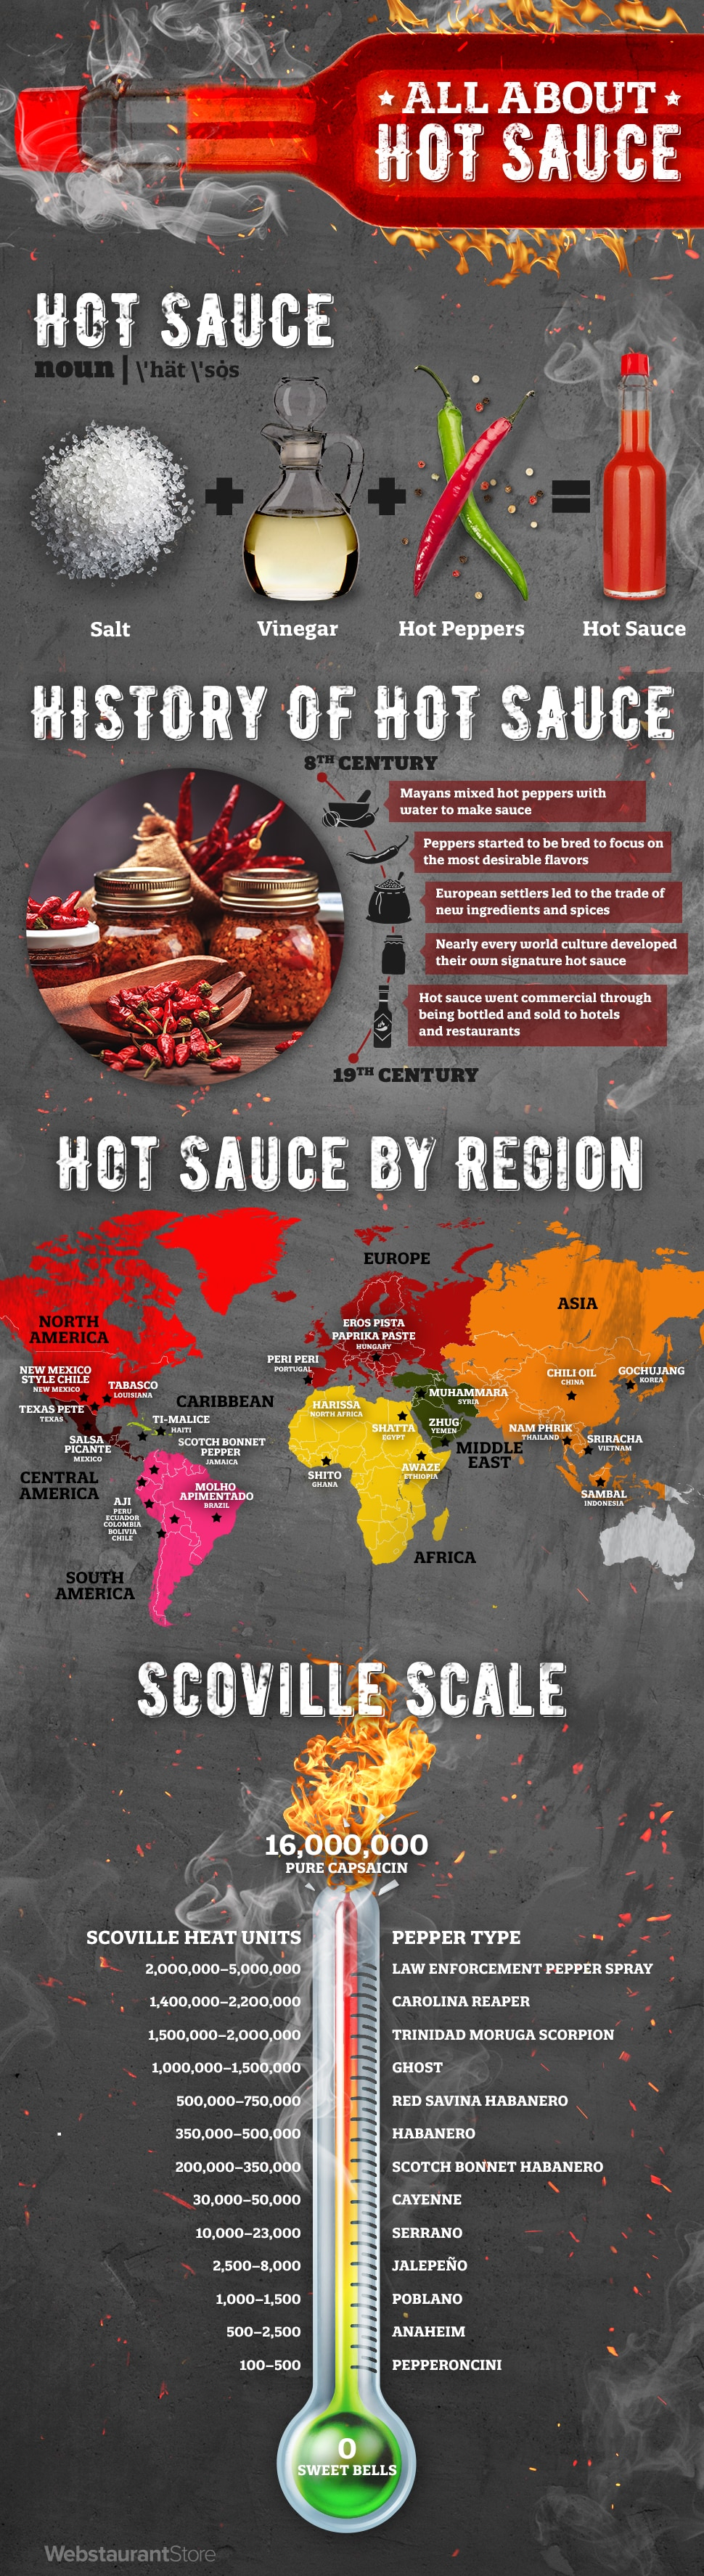 Hot Sauce Infographic